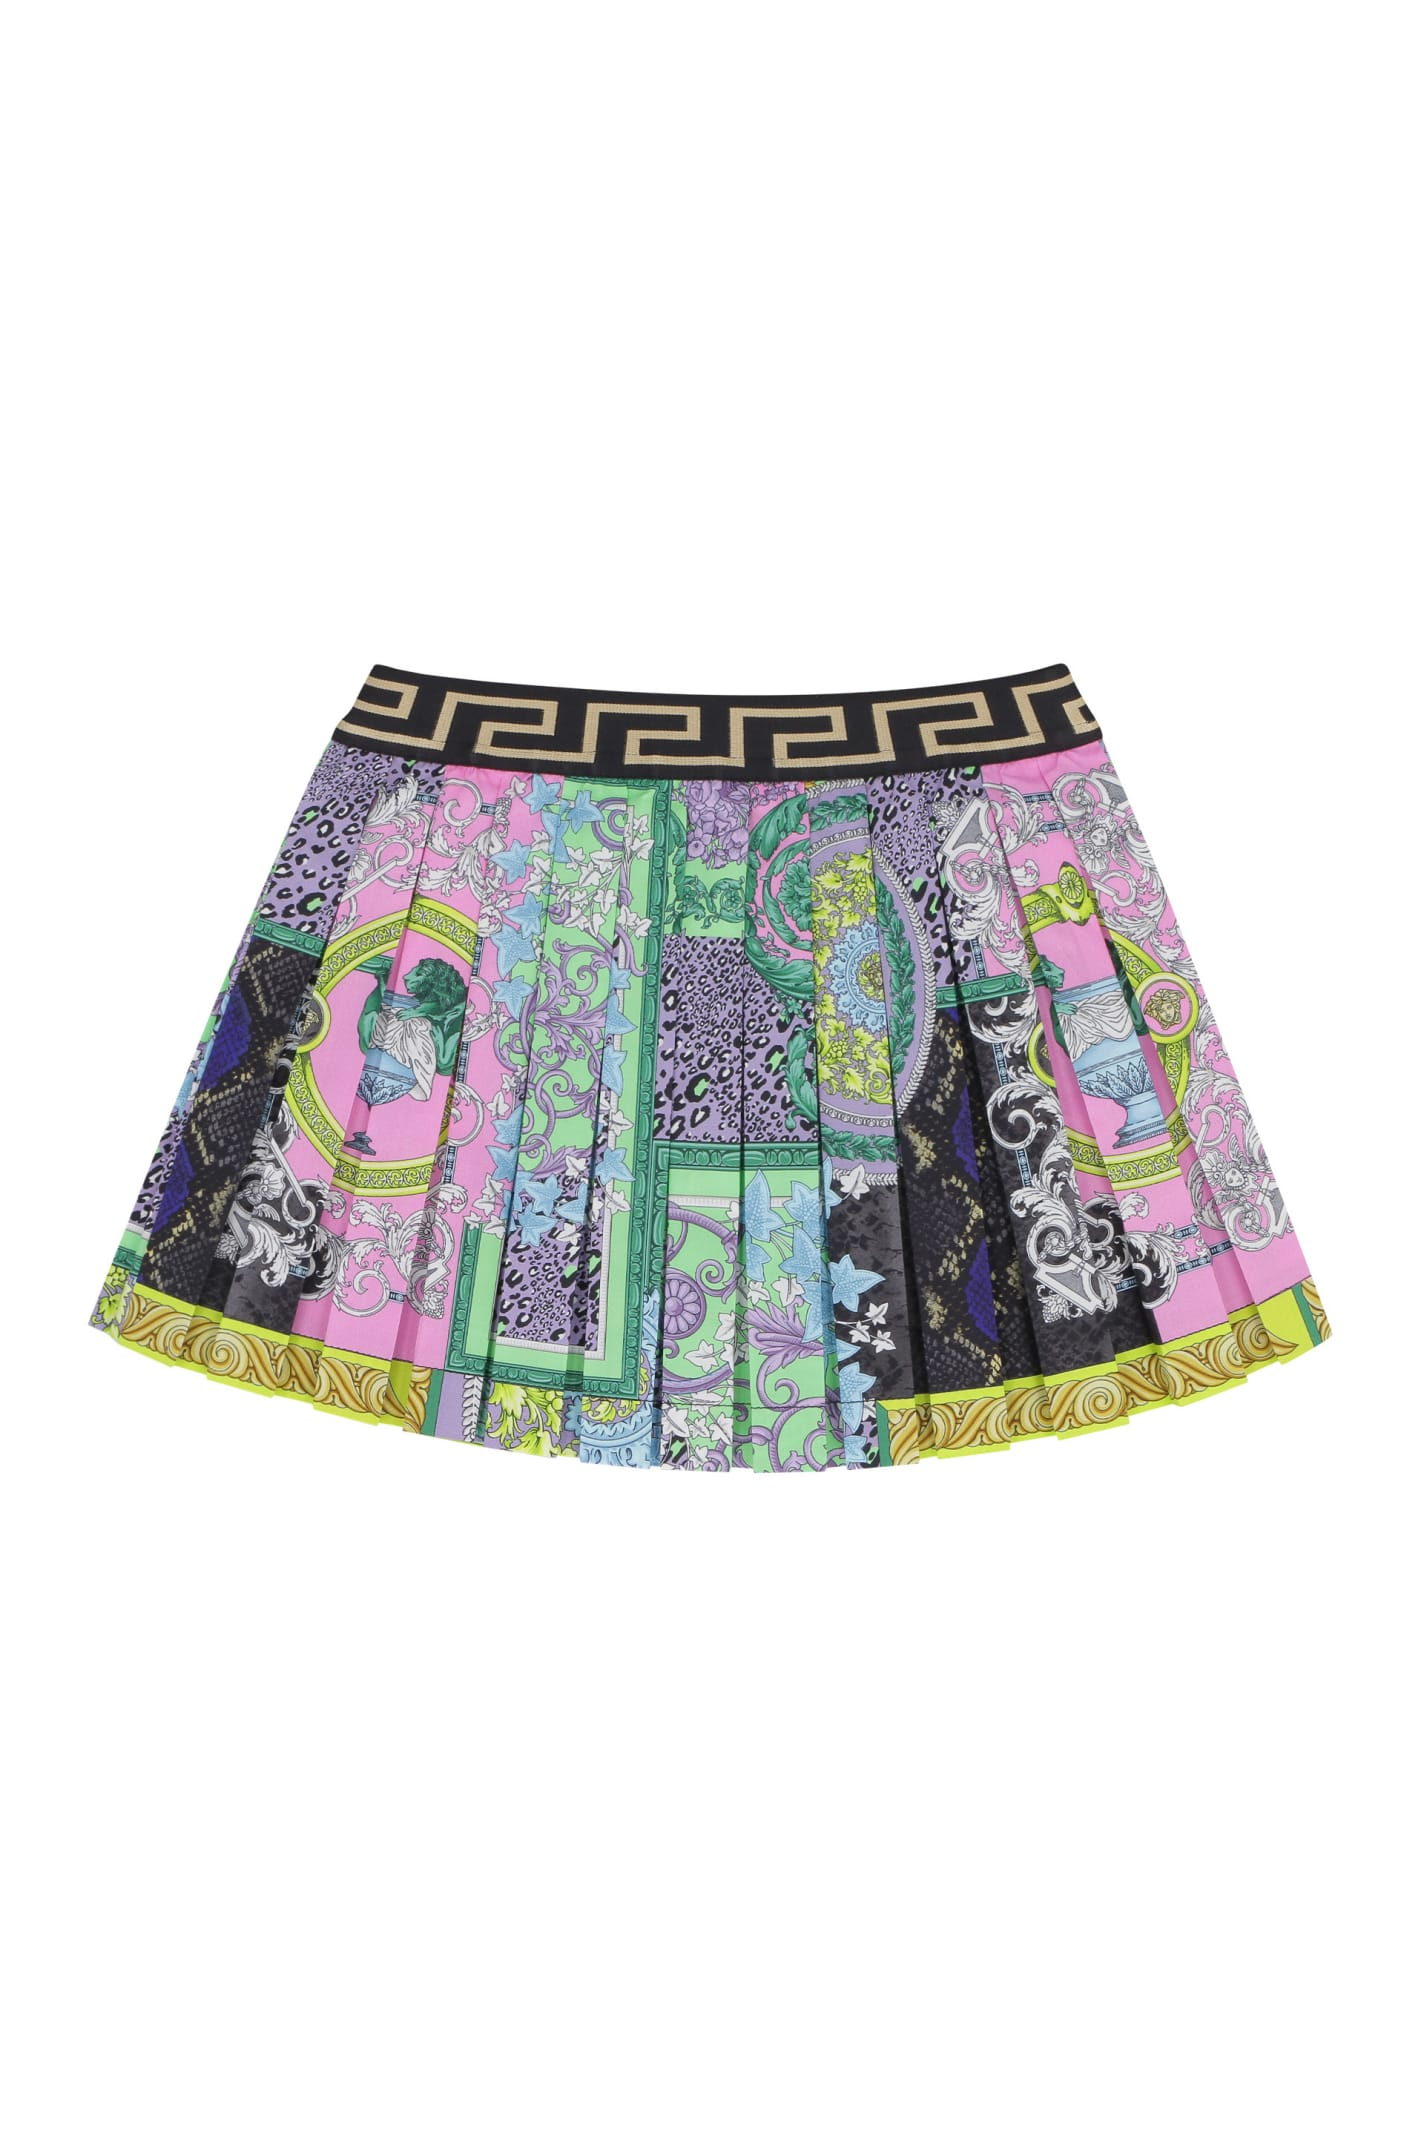 Young Versace Printed Pleated Skirt